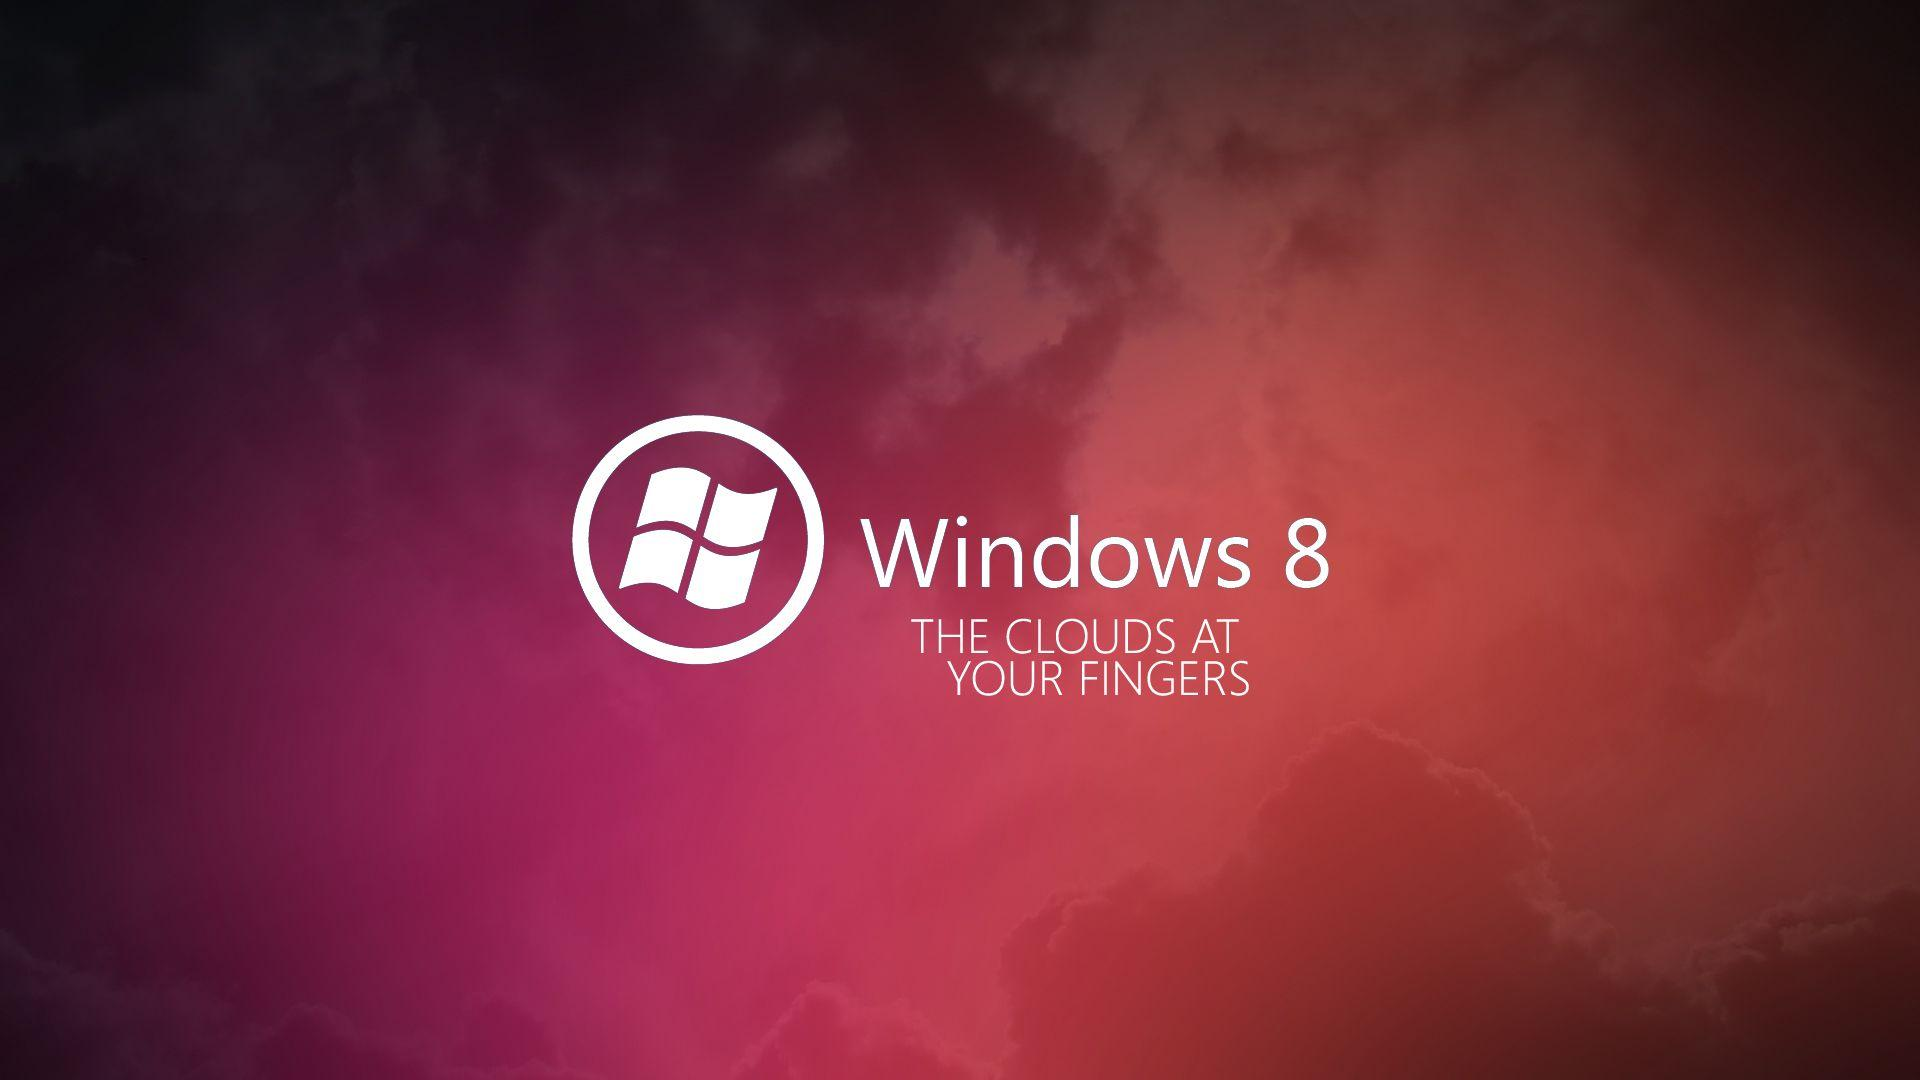 windows 8 wallpapers hd - wallpaper cave